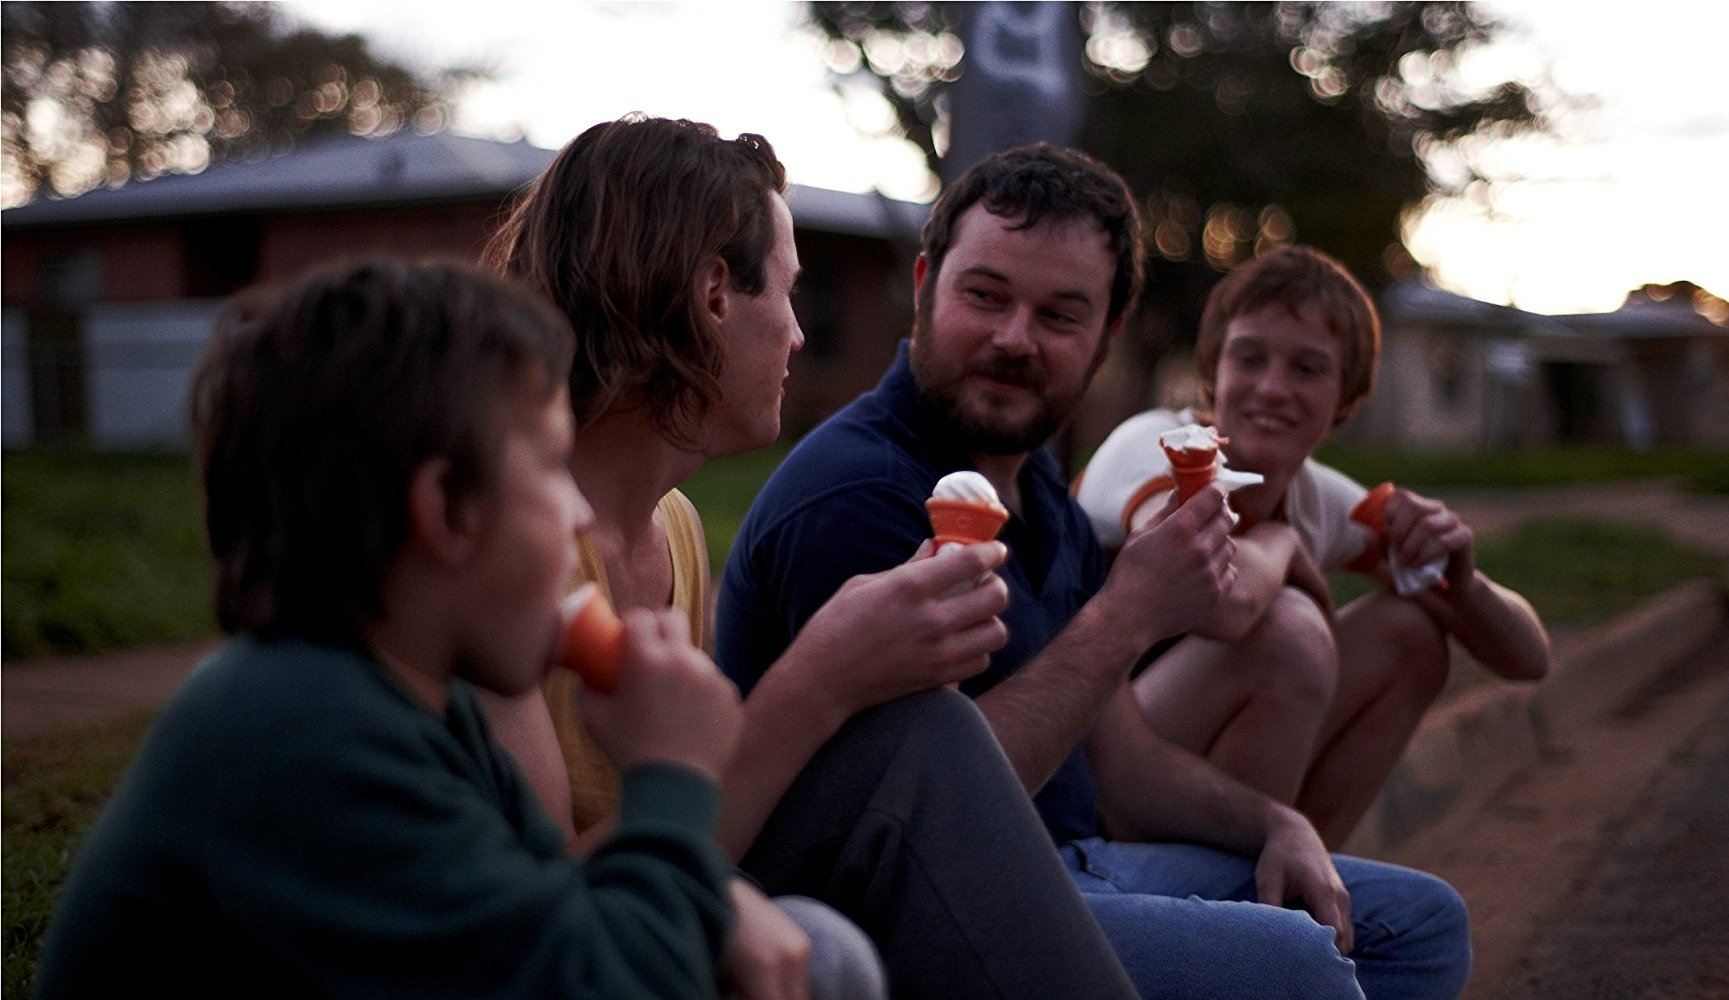 Daniel Henshall as John Bunting eating ice cream with three boys in Snowtown